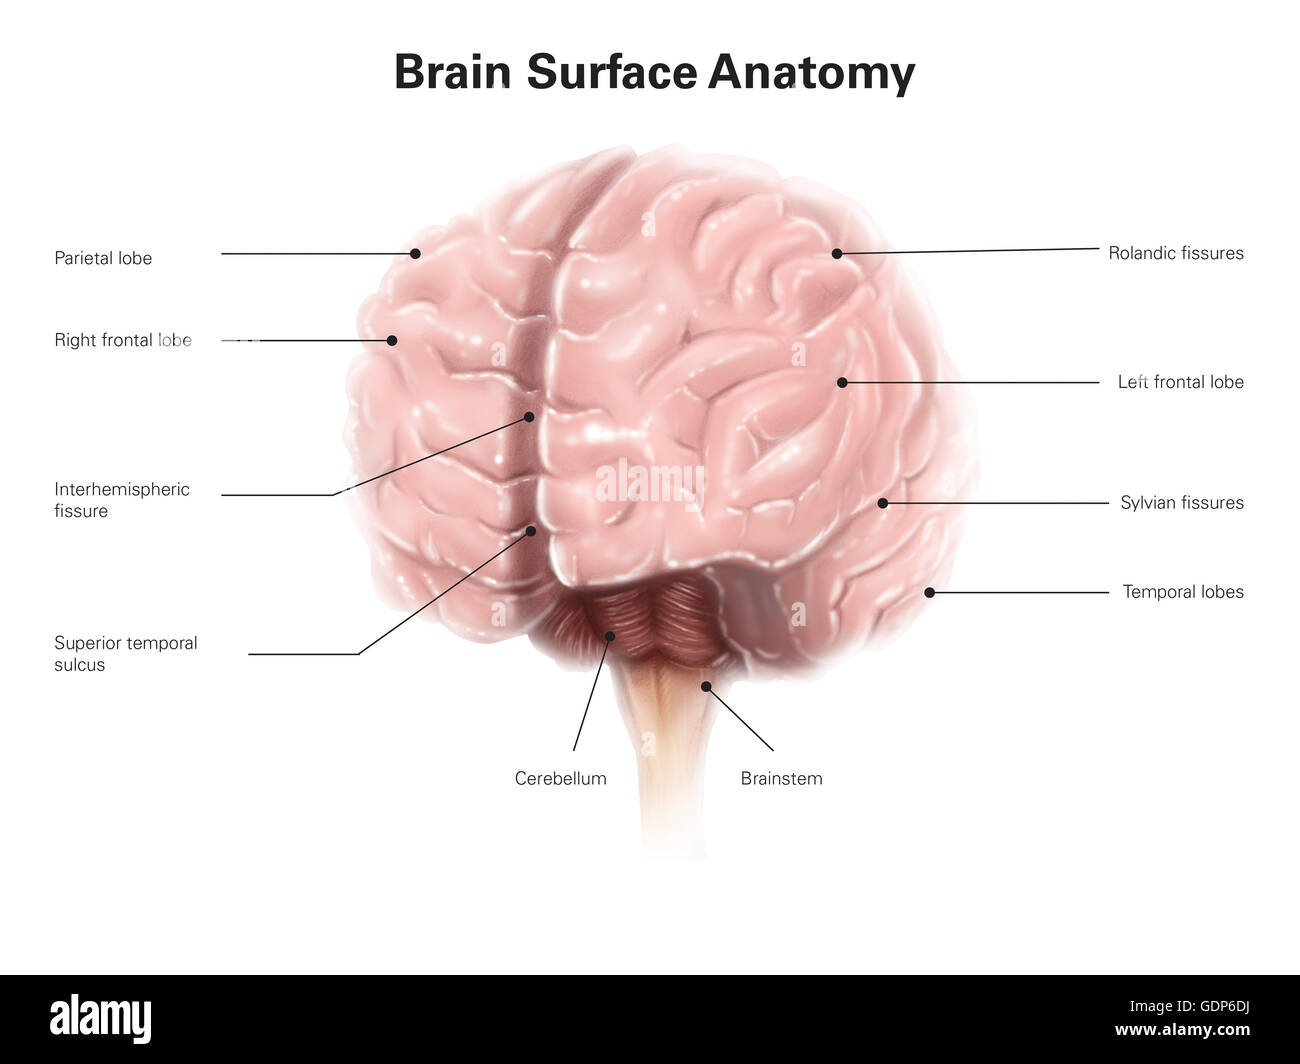 Central Sulcus Stockfotos & Central Sulcus Bilder - Alamy